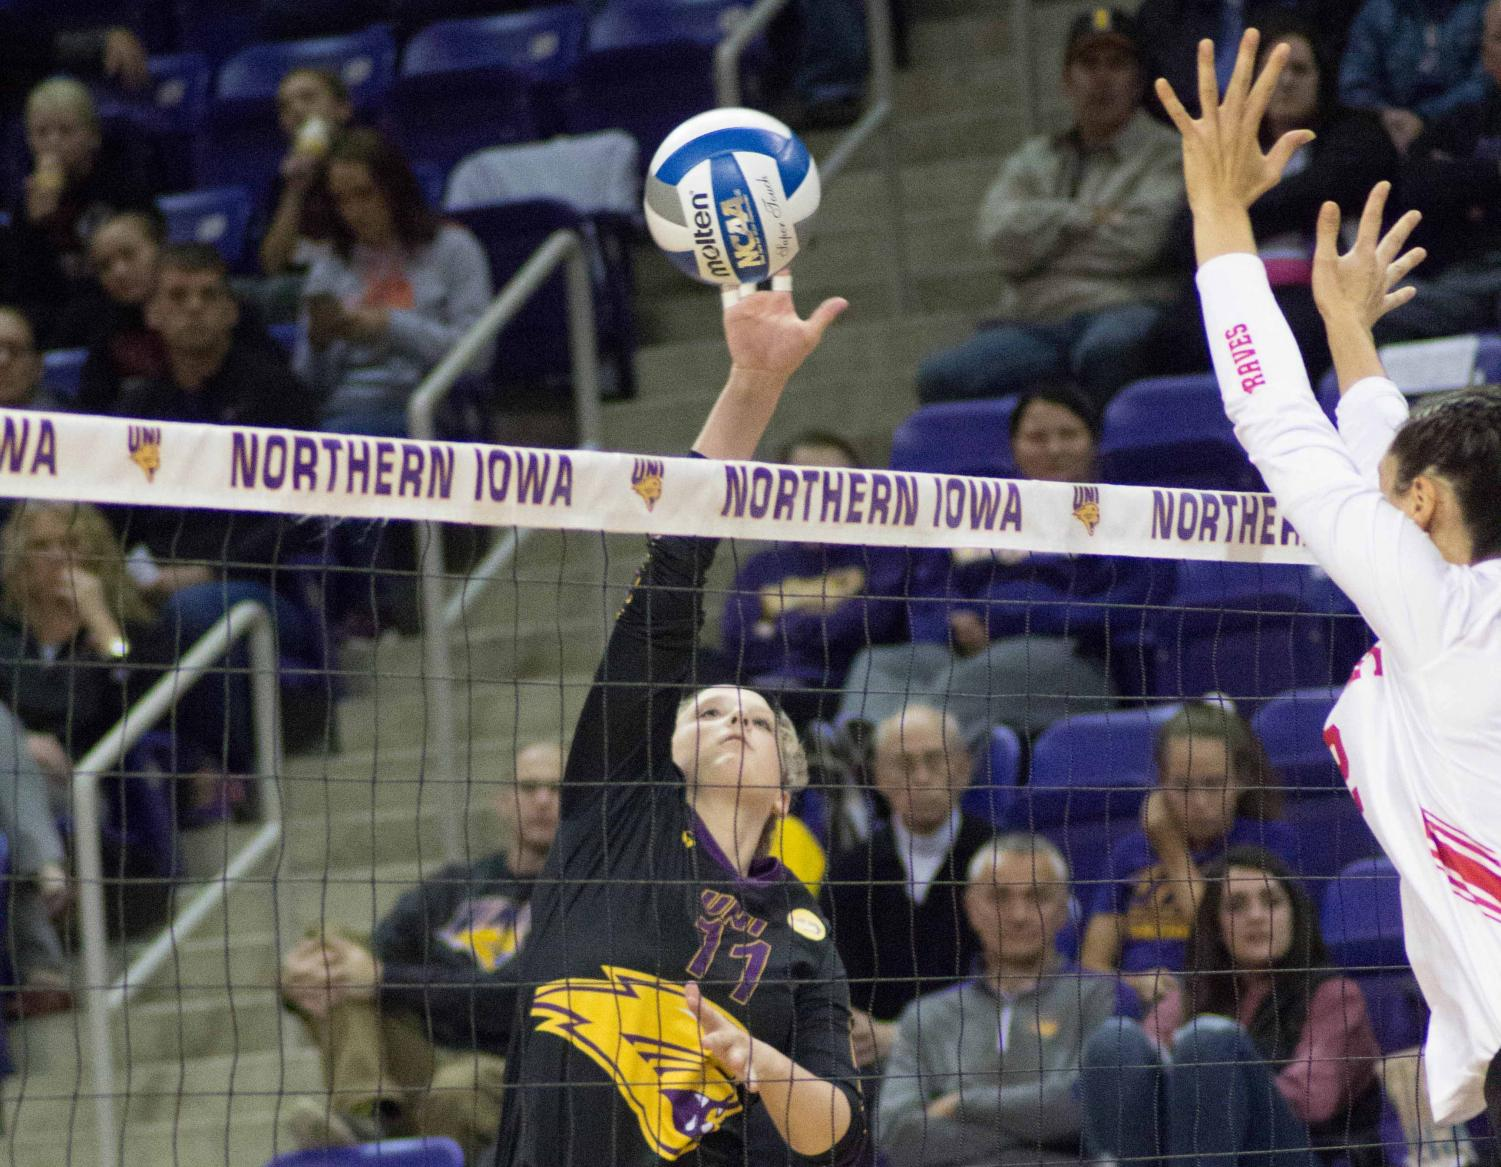 The UNI volleyball team took over sole possession of first place in the Missouri Valley Conference on Saturday night with their 3-1 win over the Bradley Braves.